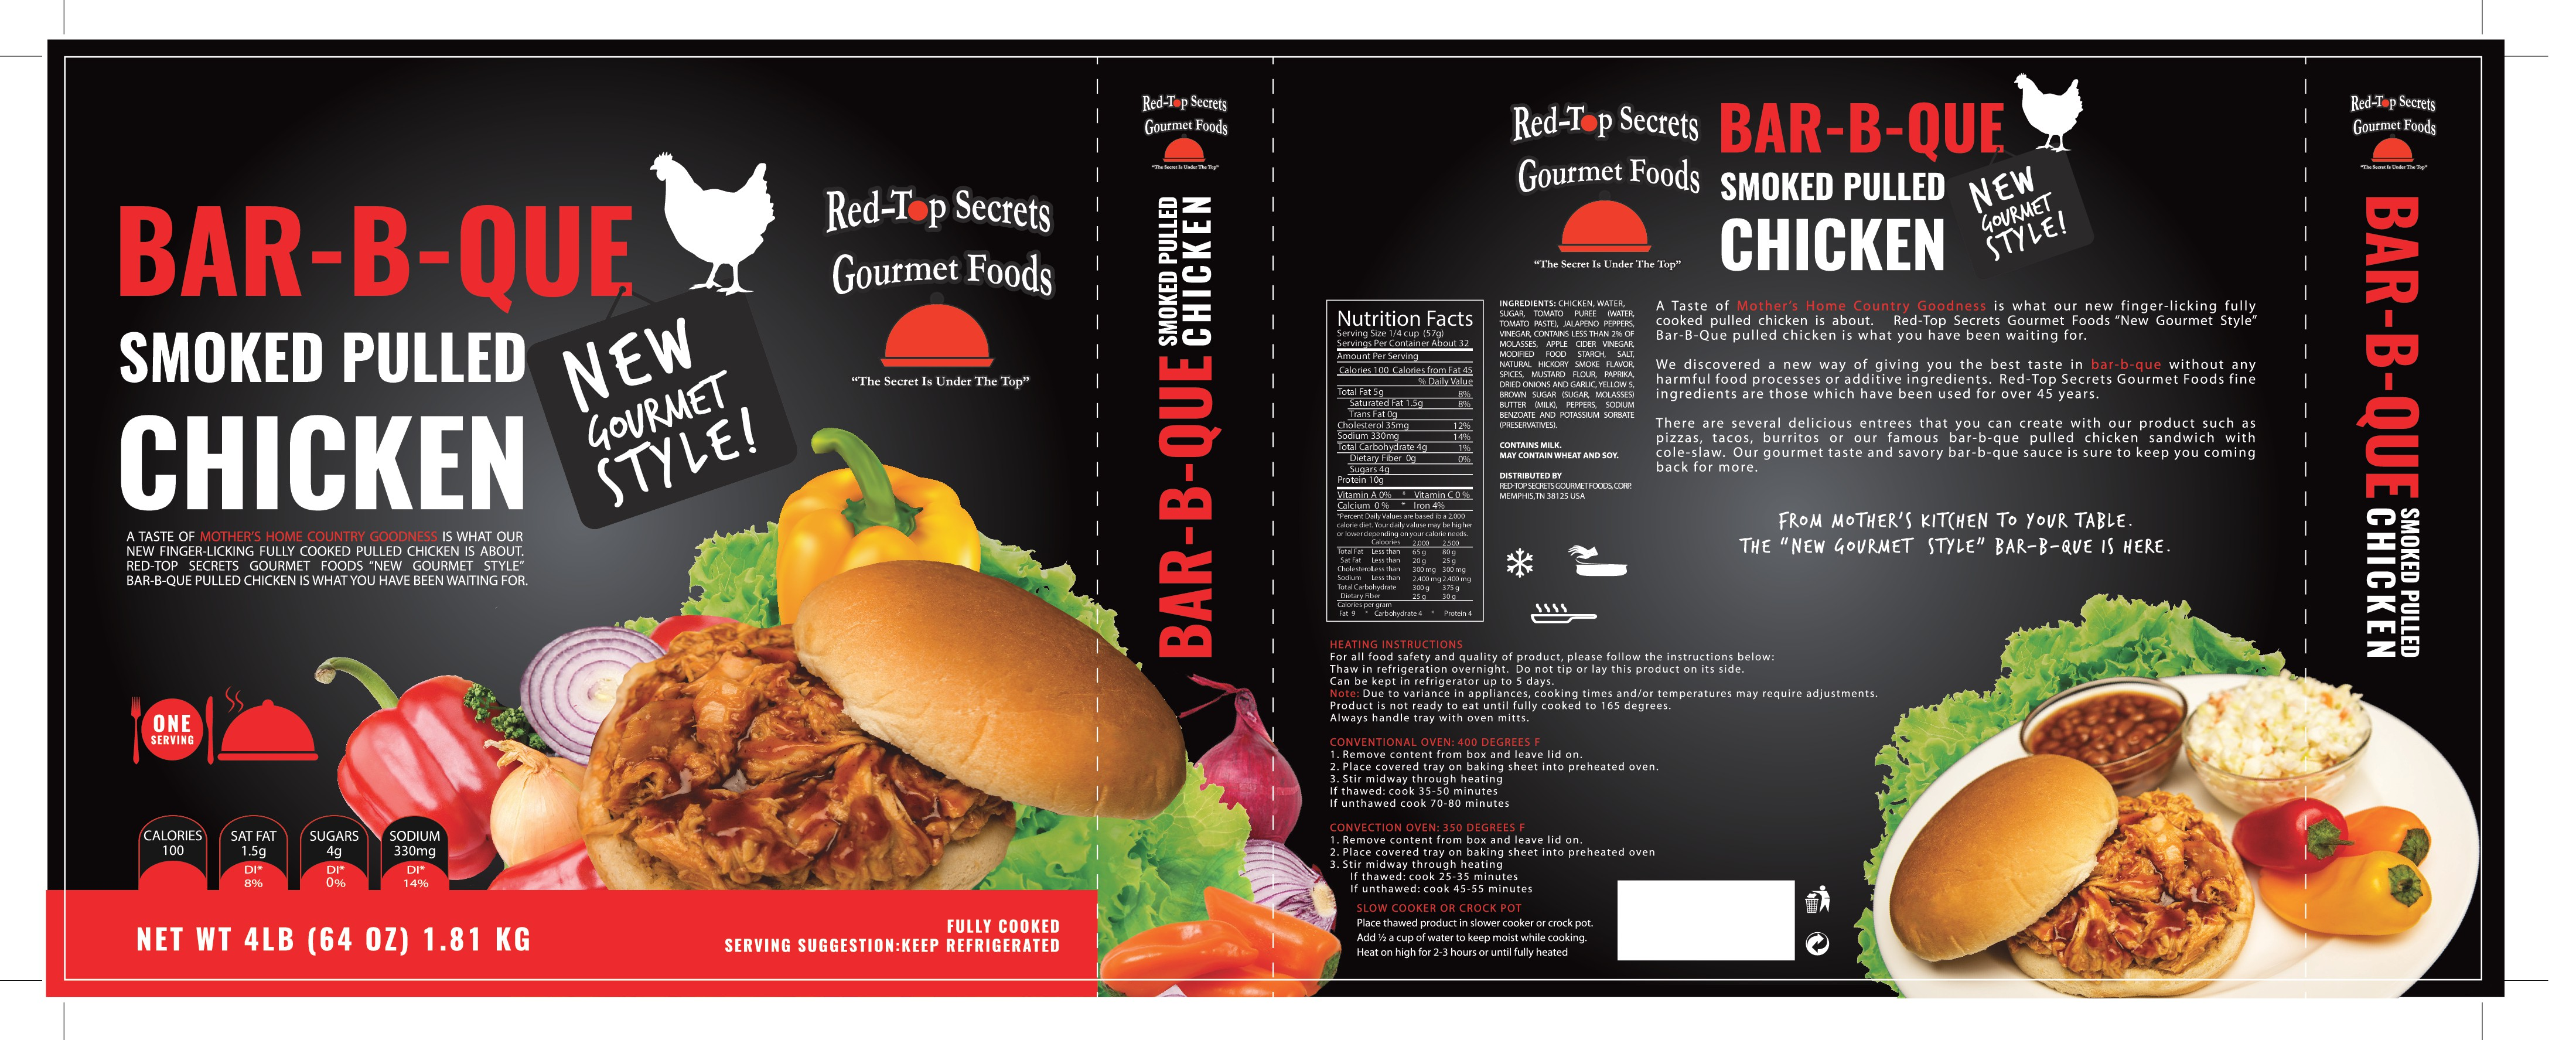 The New Healthy Style Bar-B-Que